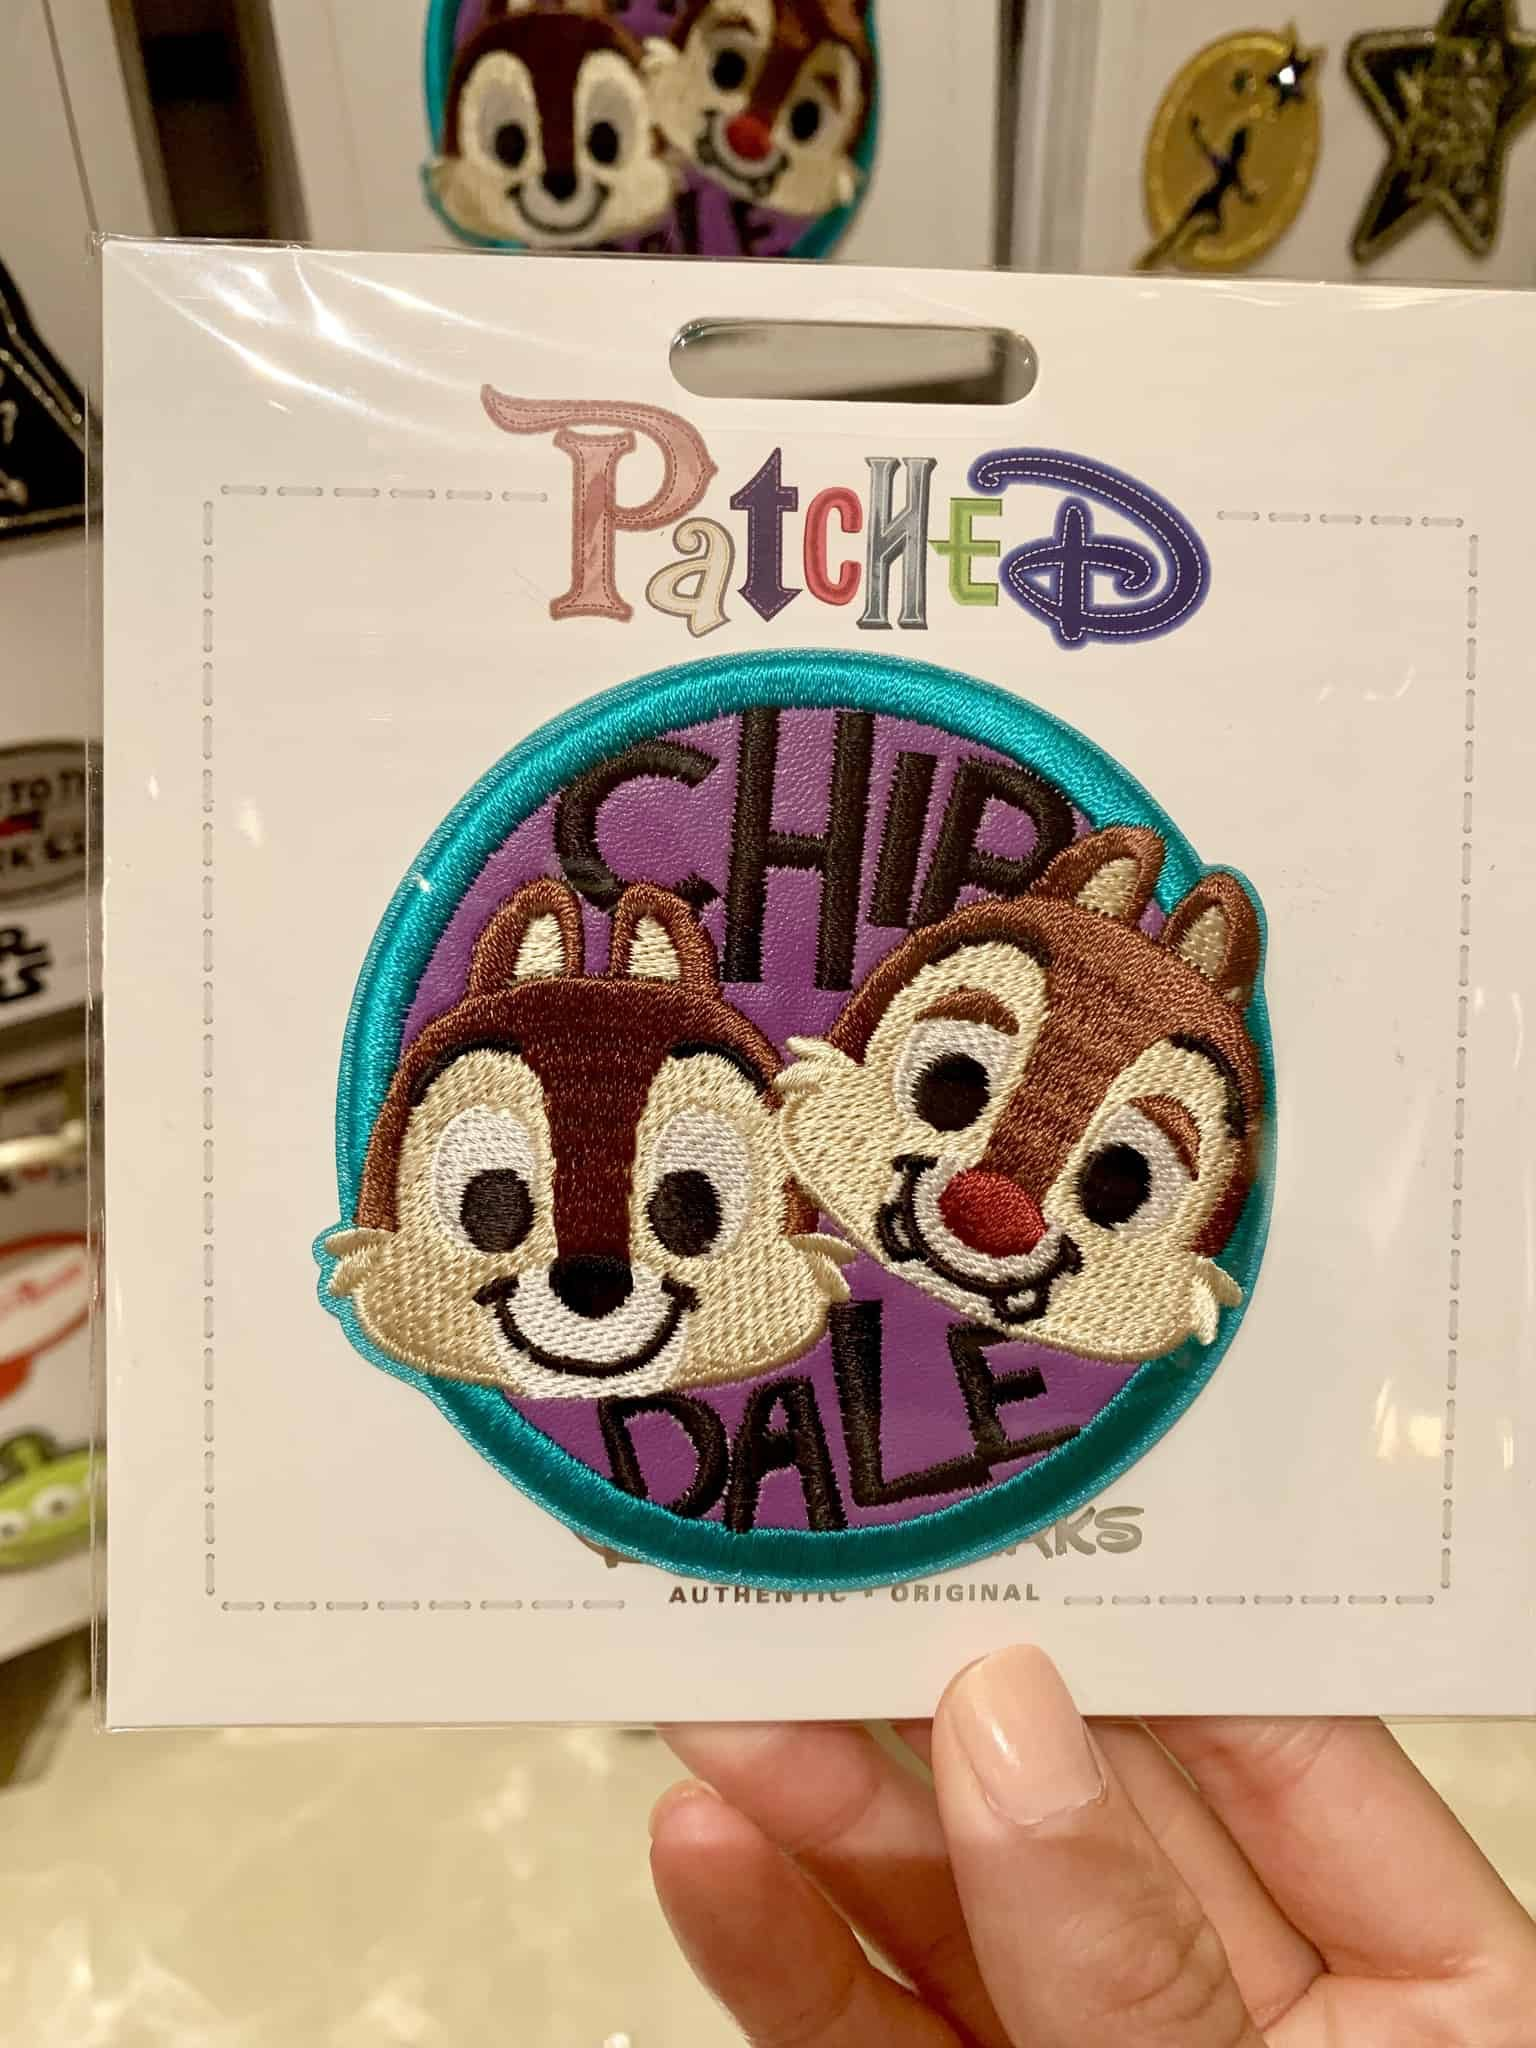 Mickey Mouse Balloon and Chip and Dale PatcheD patches Disneyland Resort